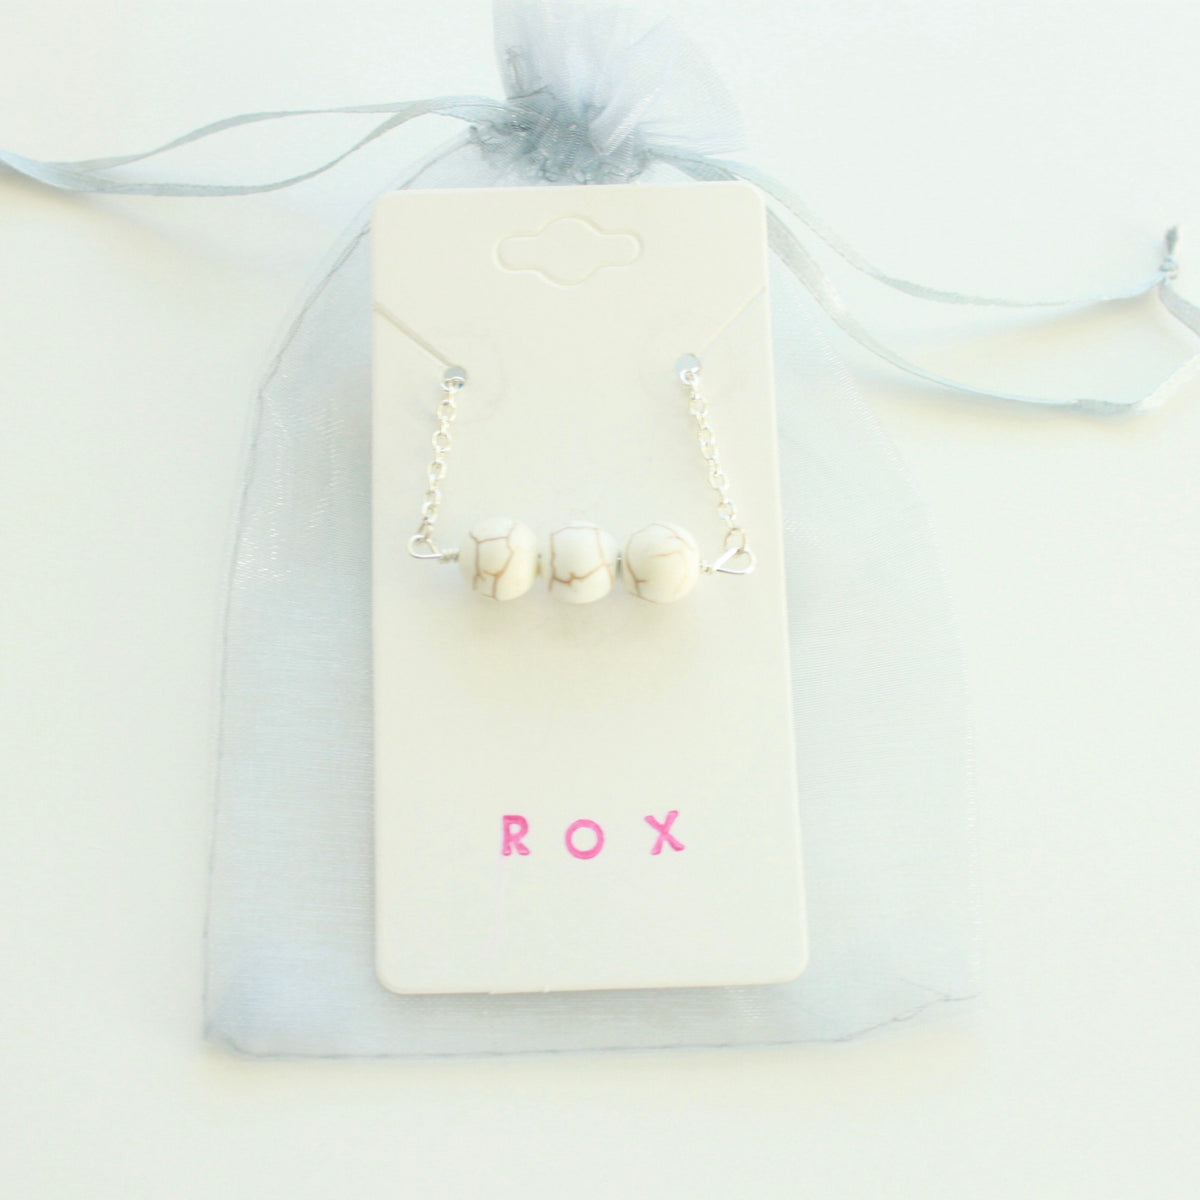 Roxanne Pendant Necklace